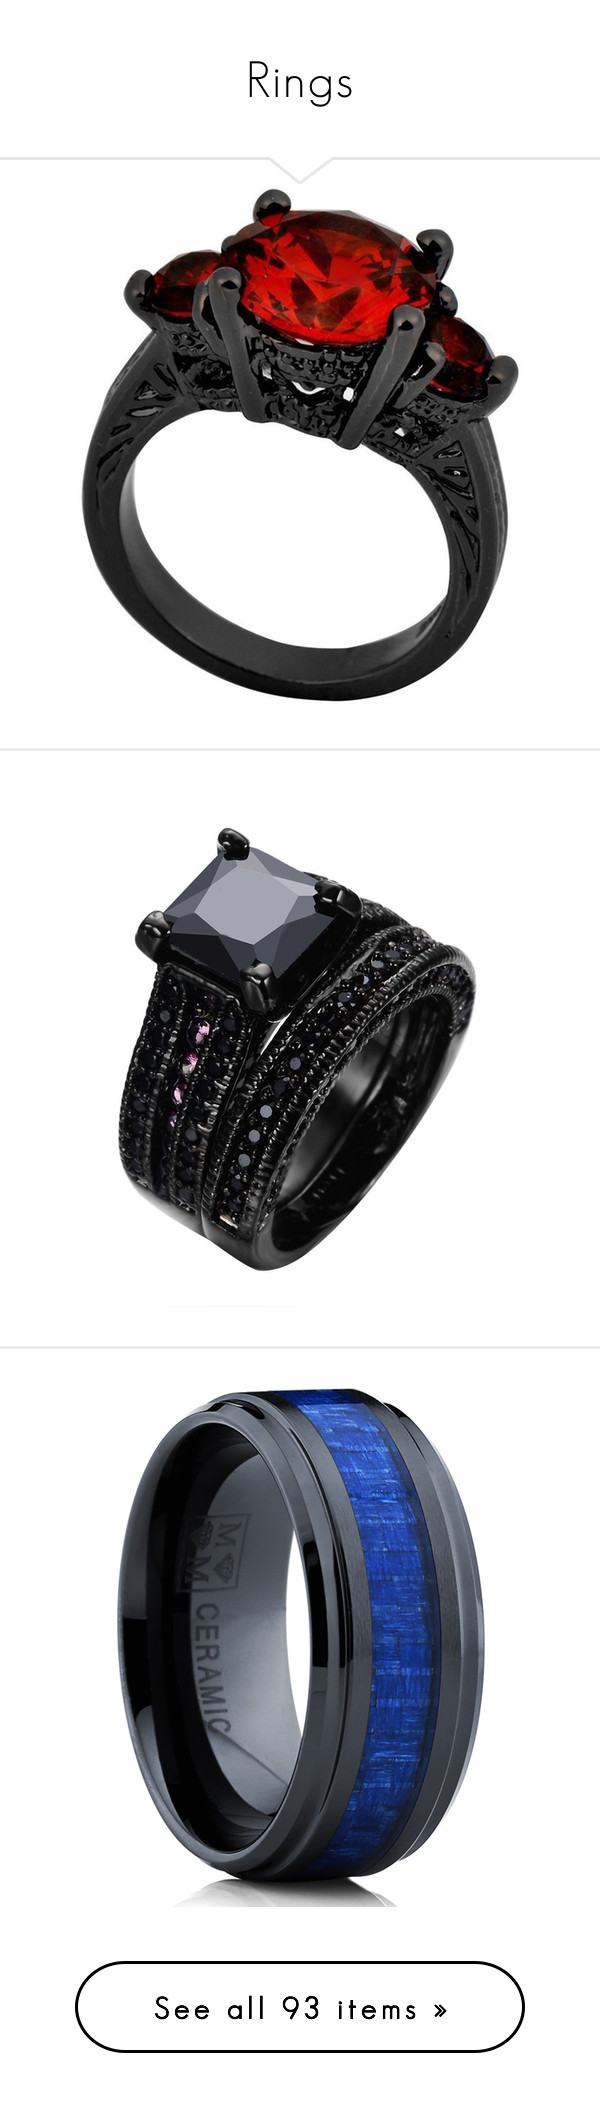 """""""Rings"""" by blackwolf1099 ❤ liked on Polyvore featuring jewelry, rings, accessories, red, wedding jewelry, wedding rings, bridal wedding rings, bridal jewelry, ruby wedding rings and diamond engagement rings"""